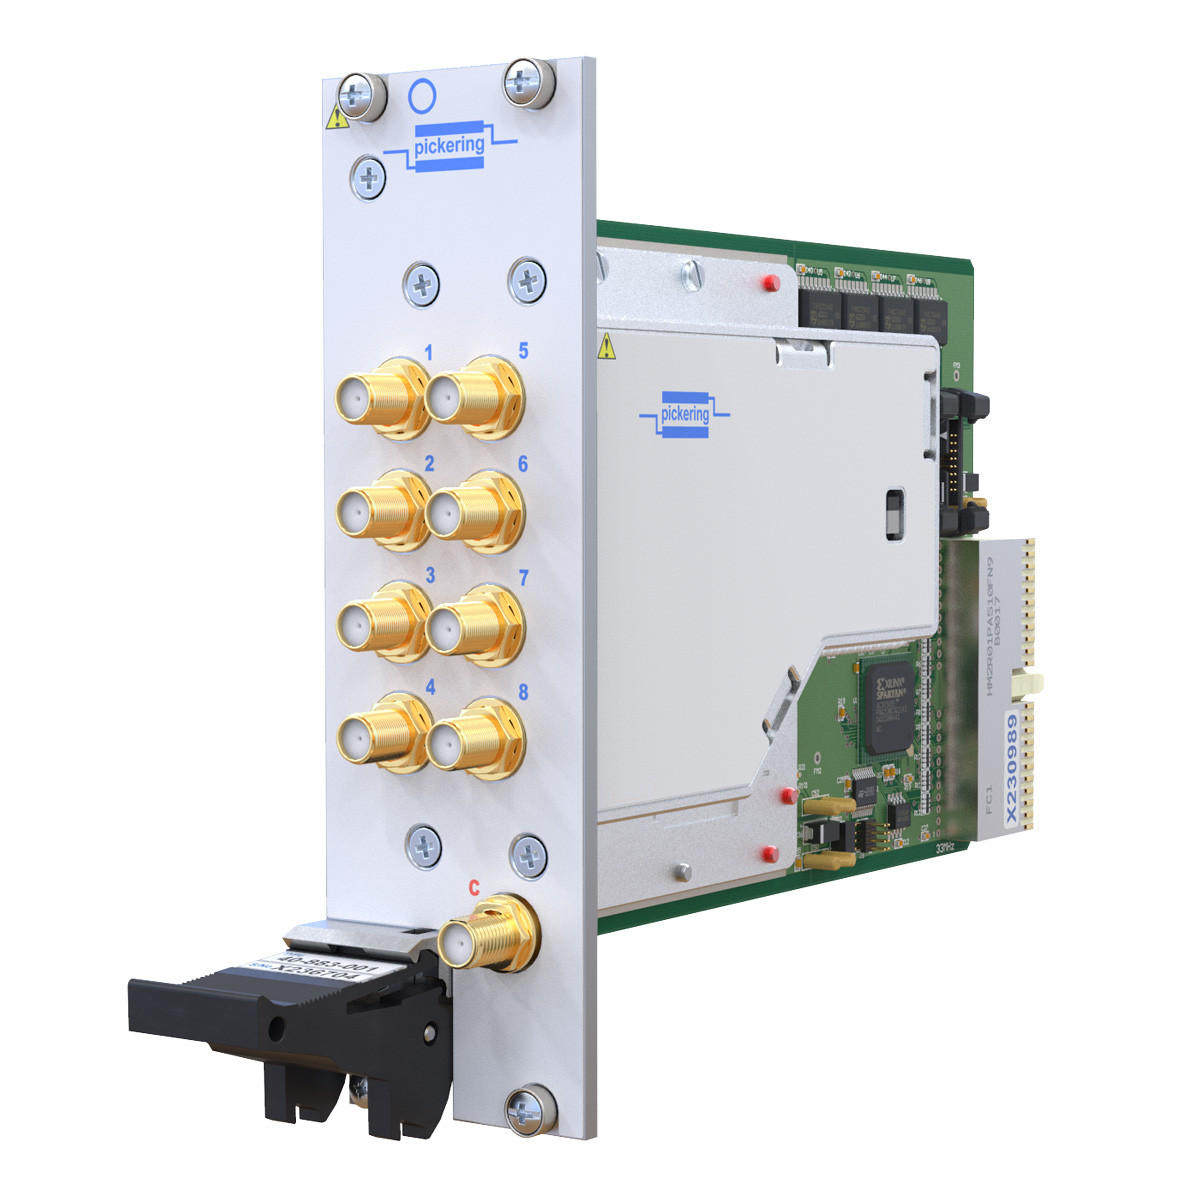 New Modular Switching Simulation Products Pickering Interfaces Software Suits Rf Circuit Design Applications 40 883a Pxi 8ghz Sp8t Matrix Module